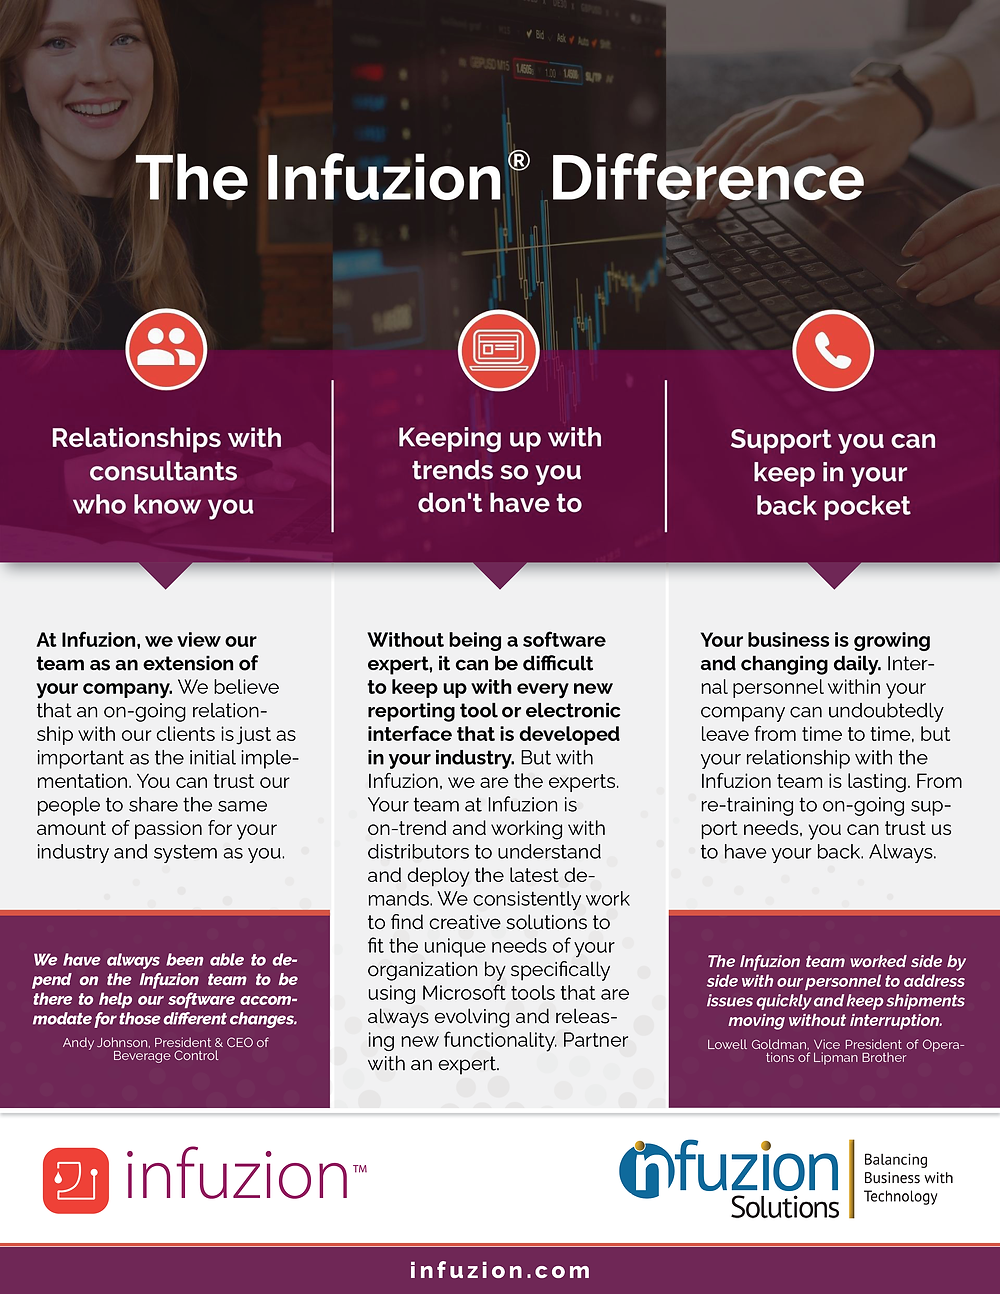 The infuzion difference